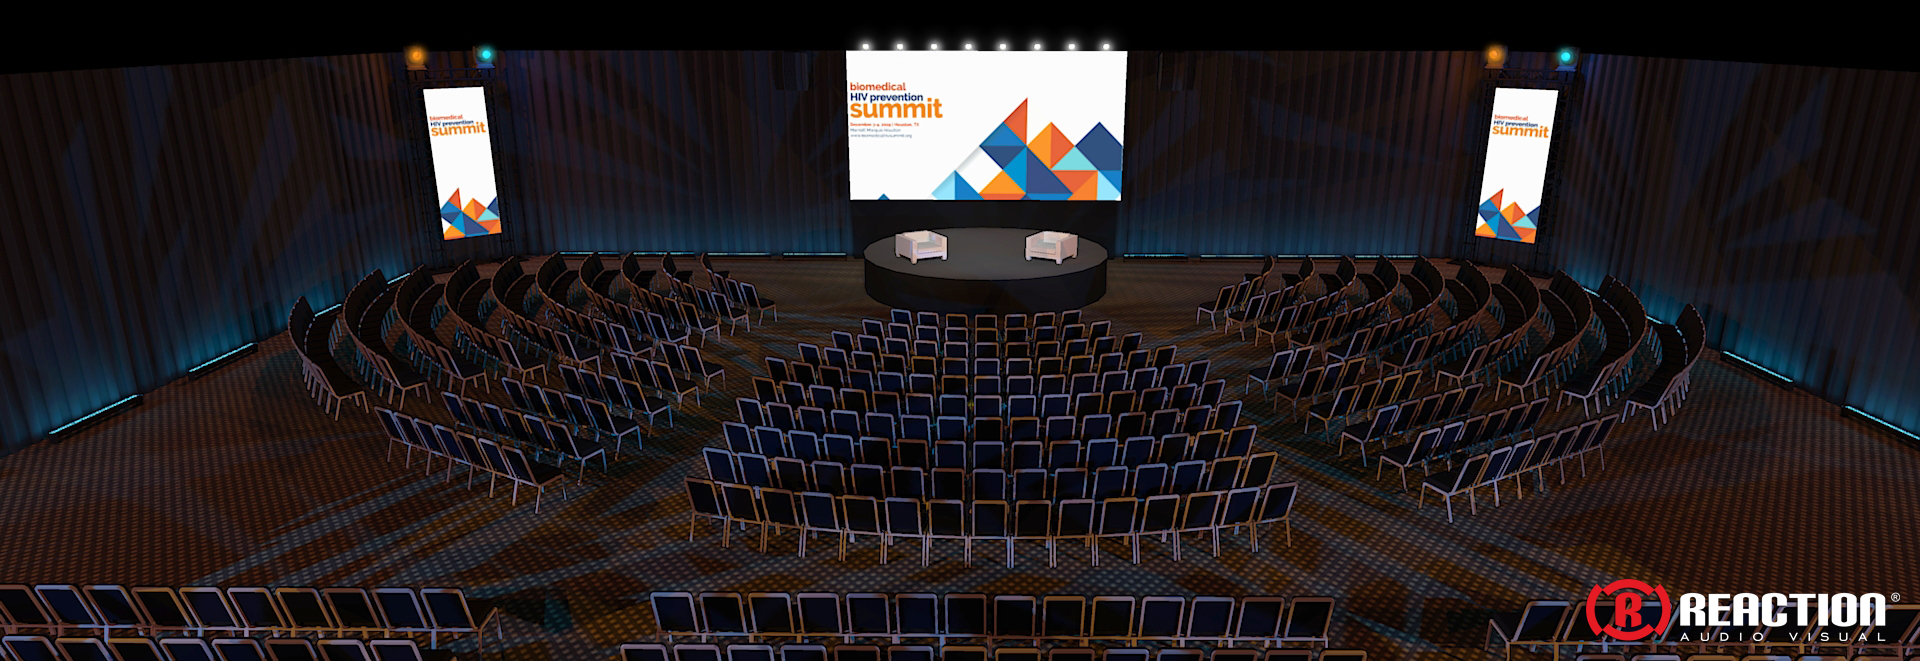 BioSummit Render